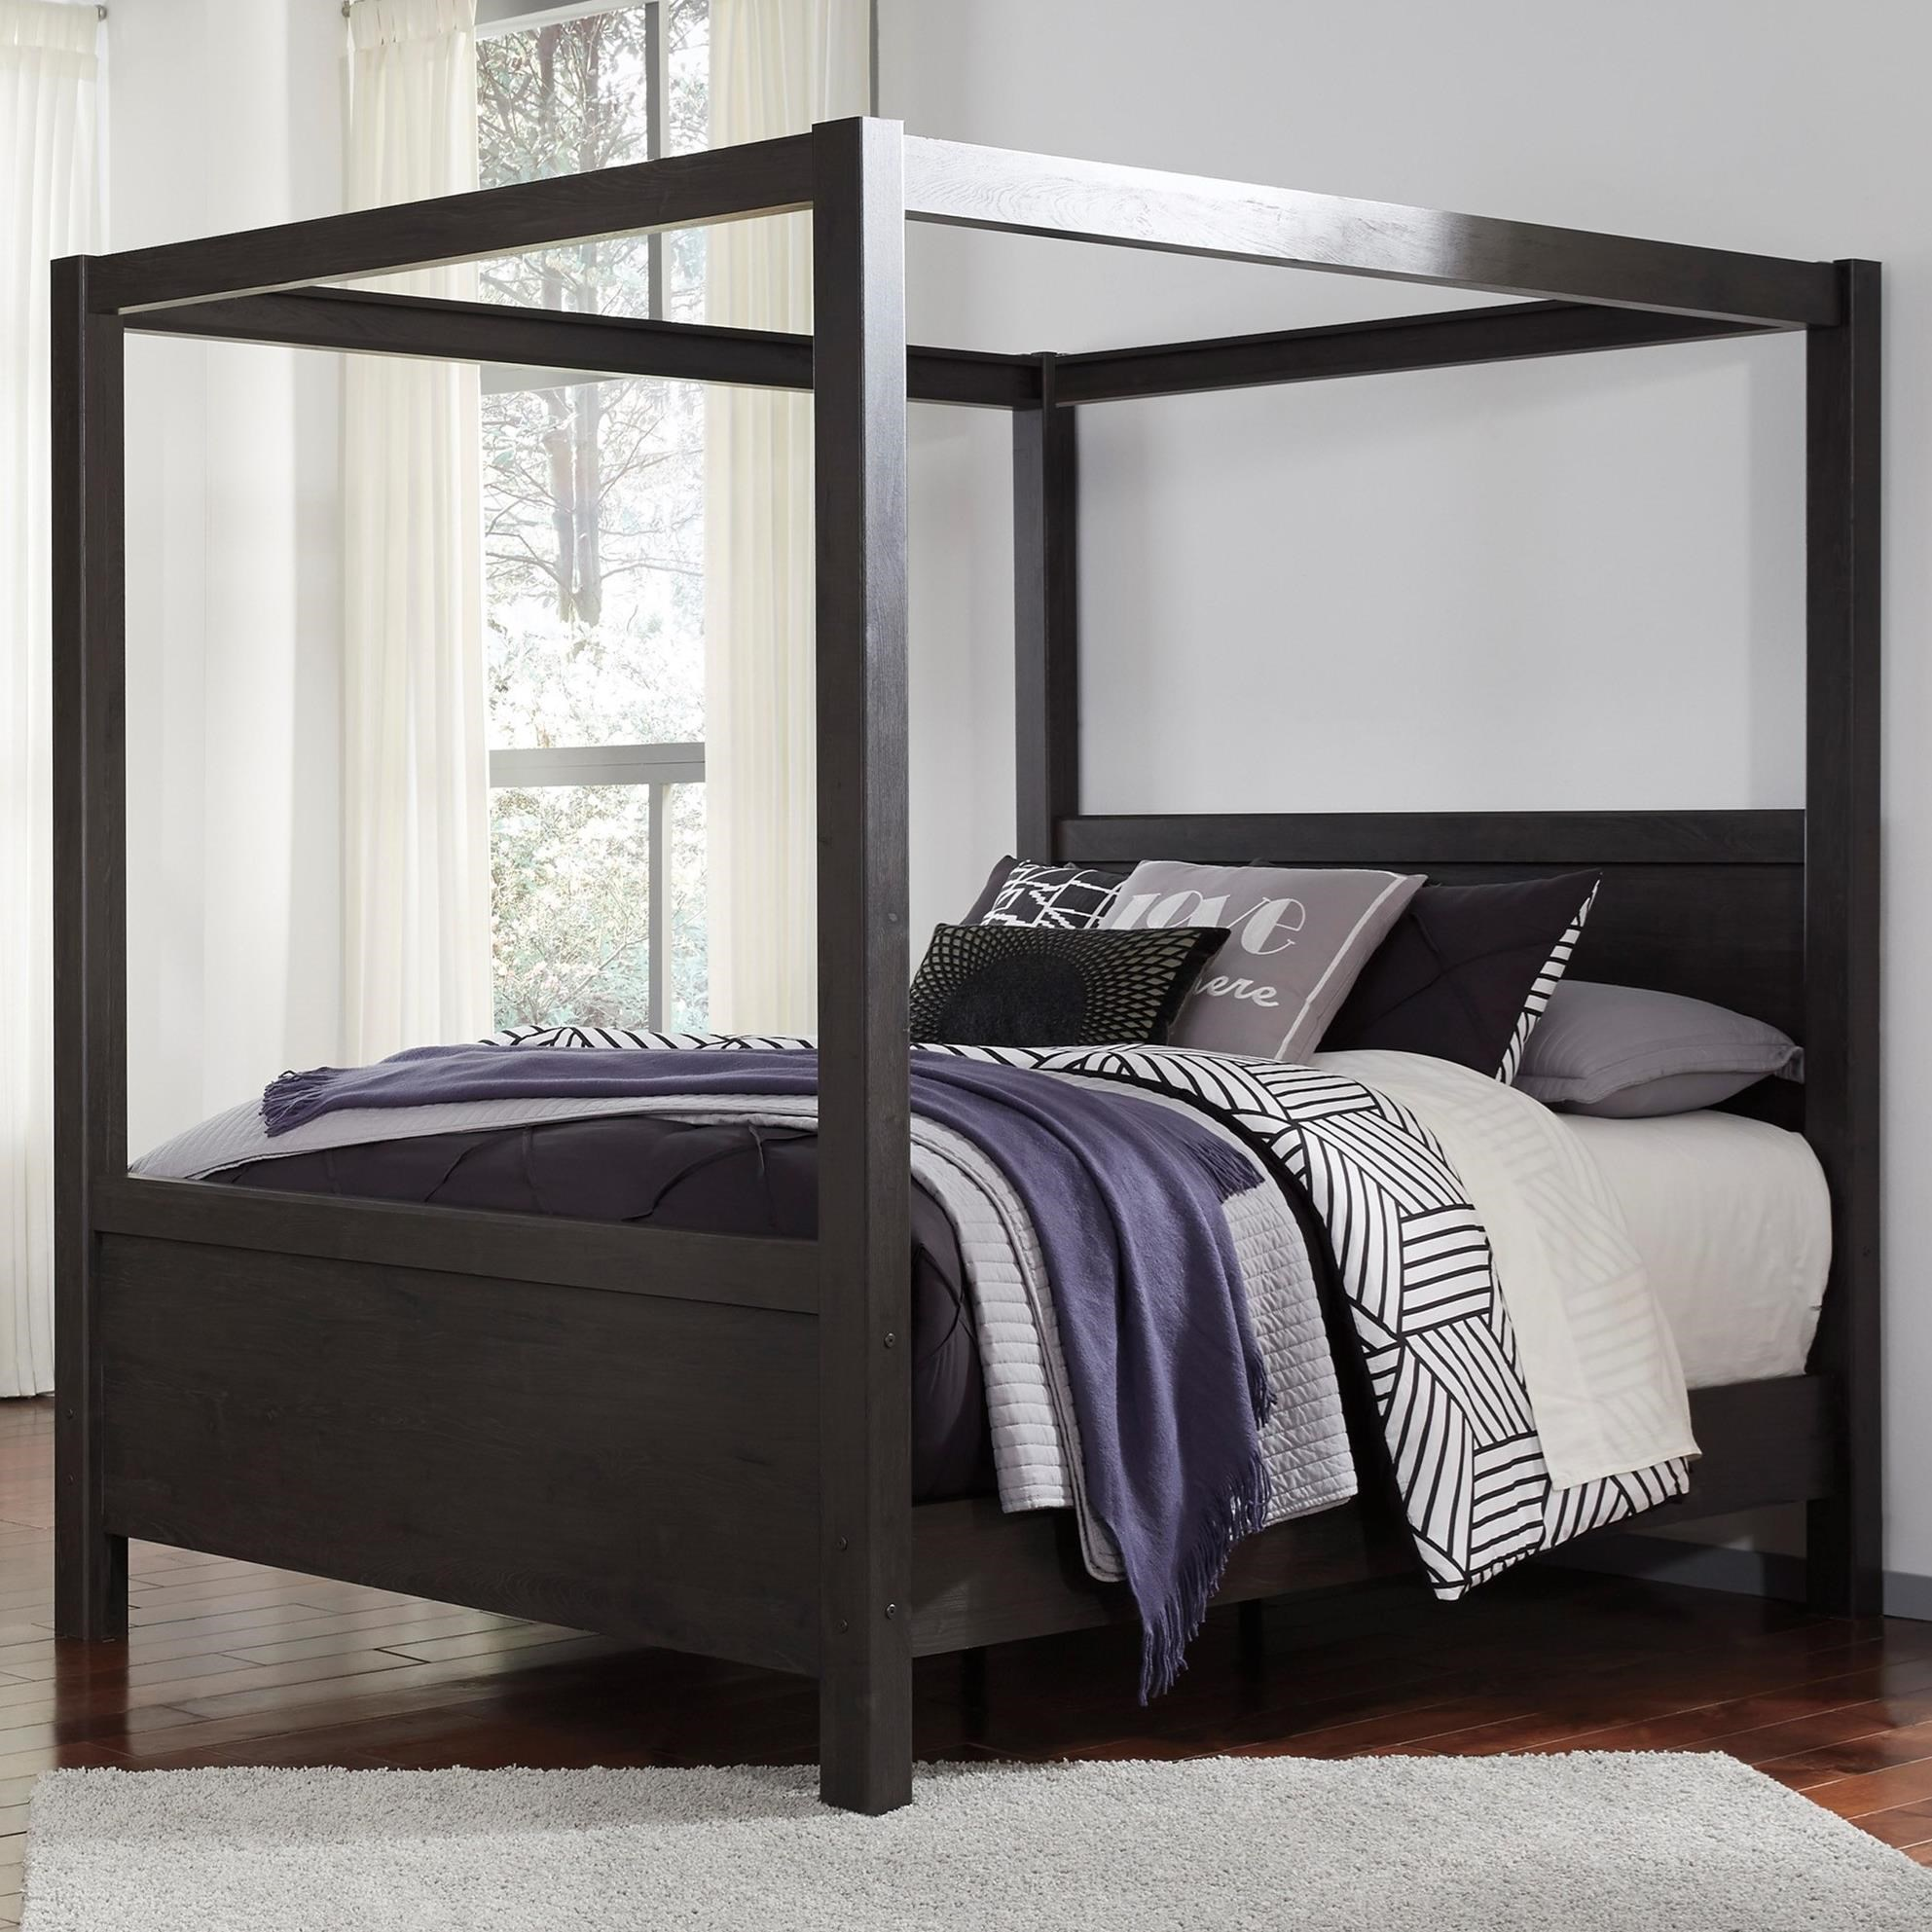 furniture king st size bed sets queen view regis l black bedroom with bunk set adult beds slide larger canopy